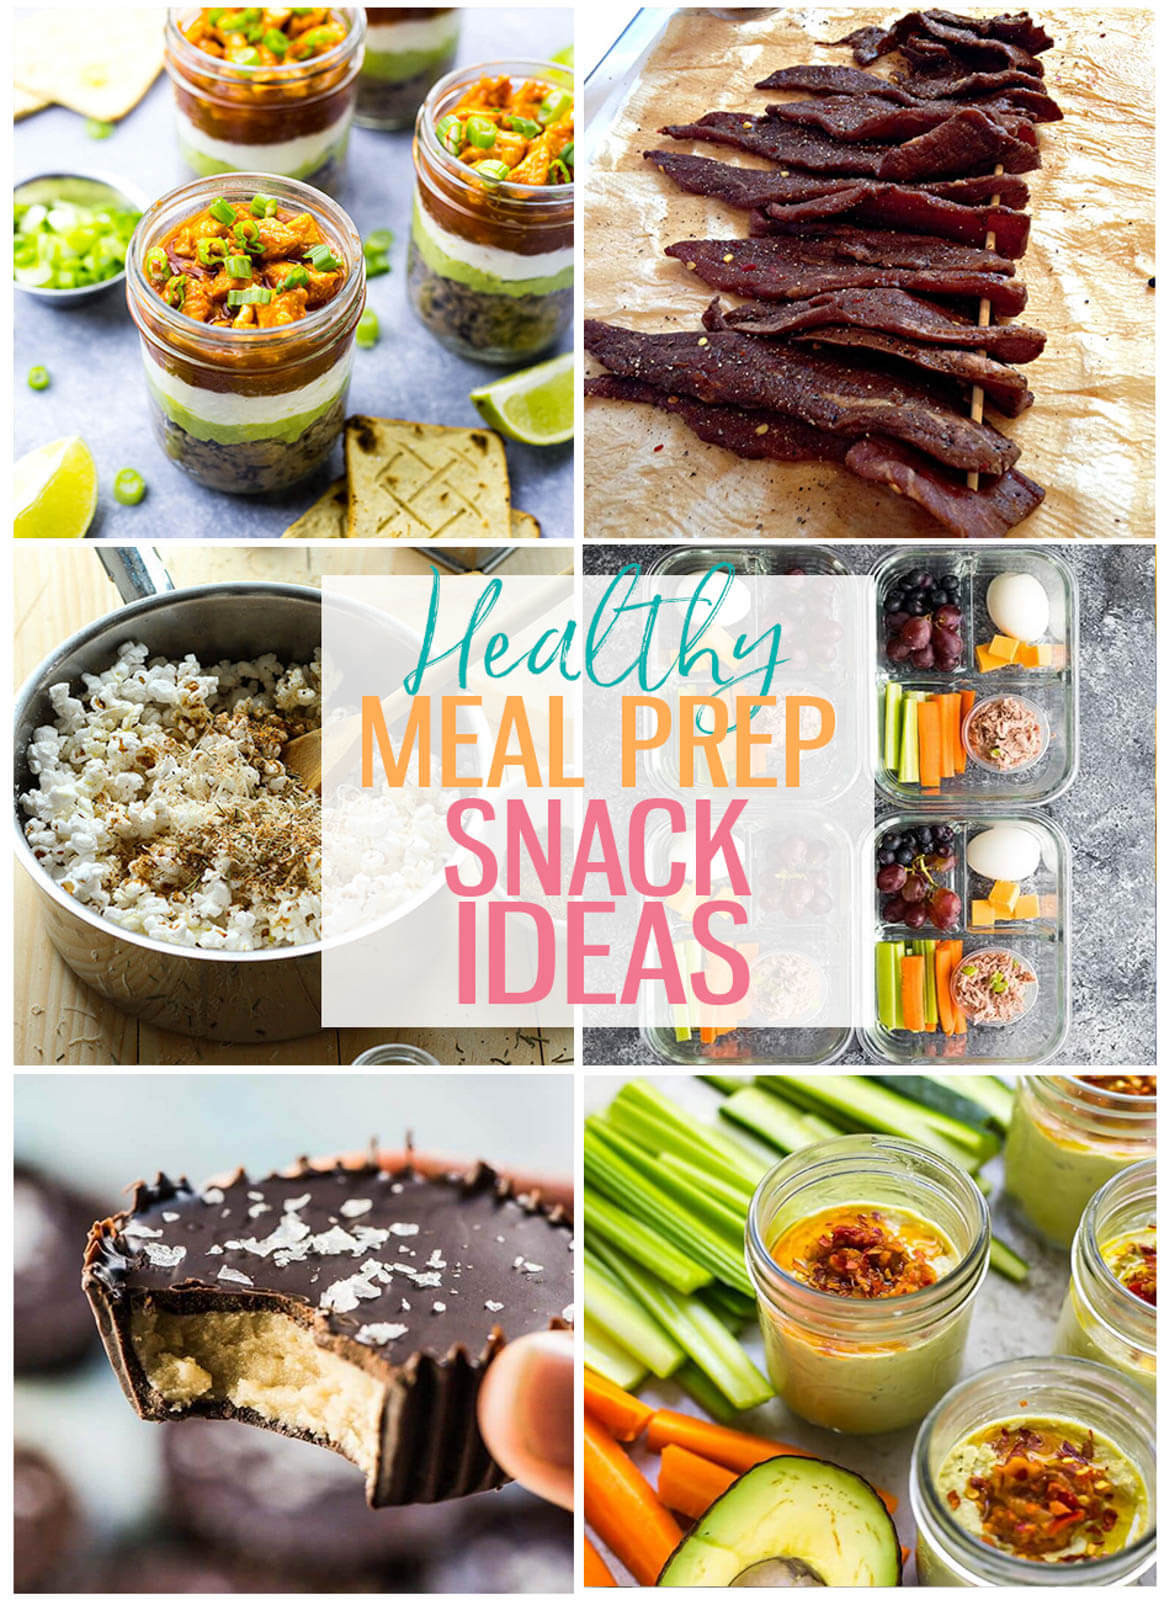 Healthy Snacks To Take To Work  18 Meal Prep Healthy Snacks for Work The Girl on Bloor